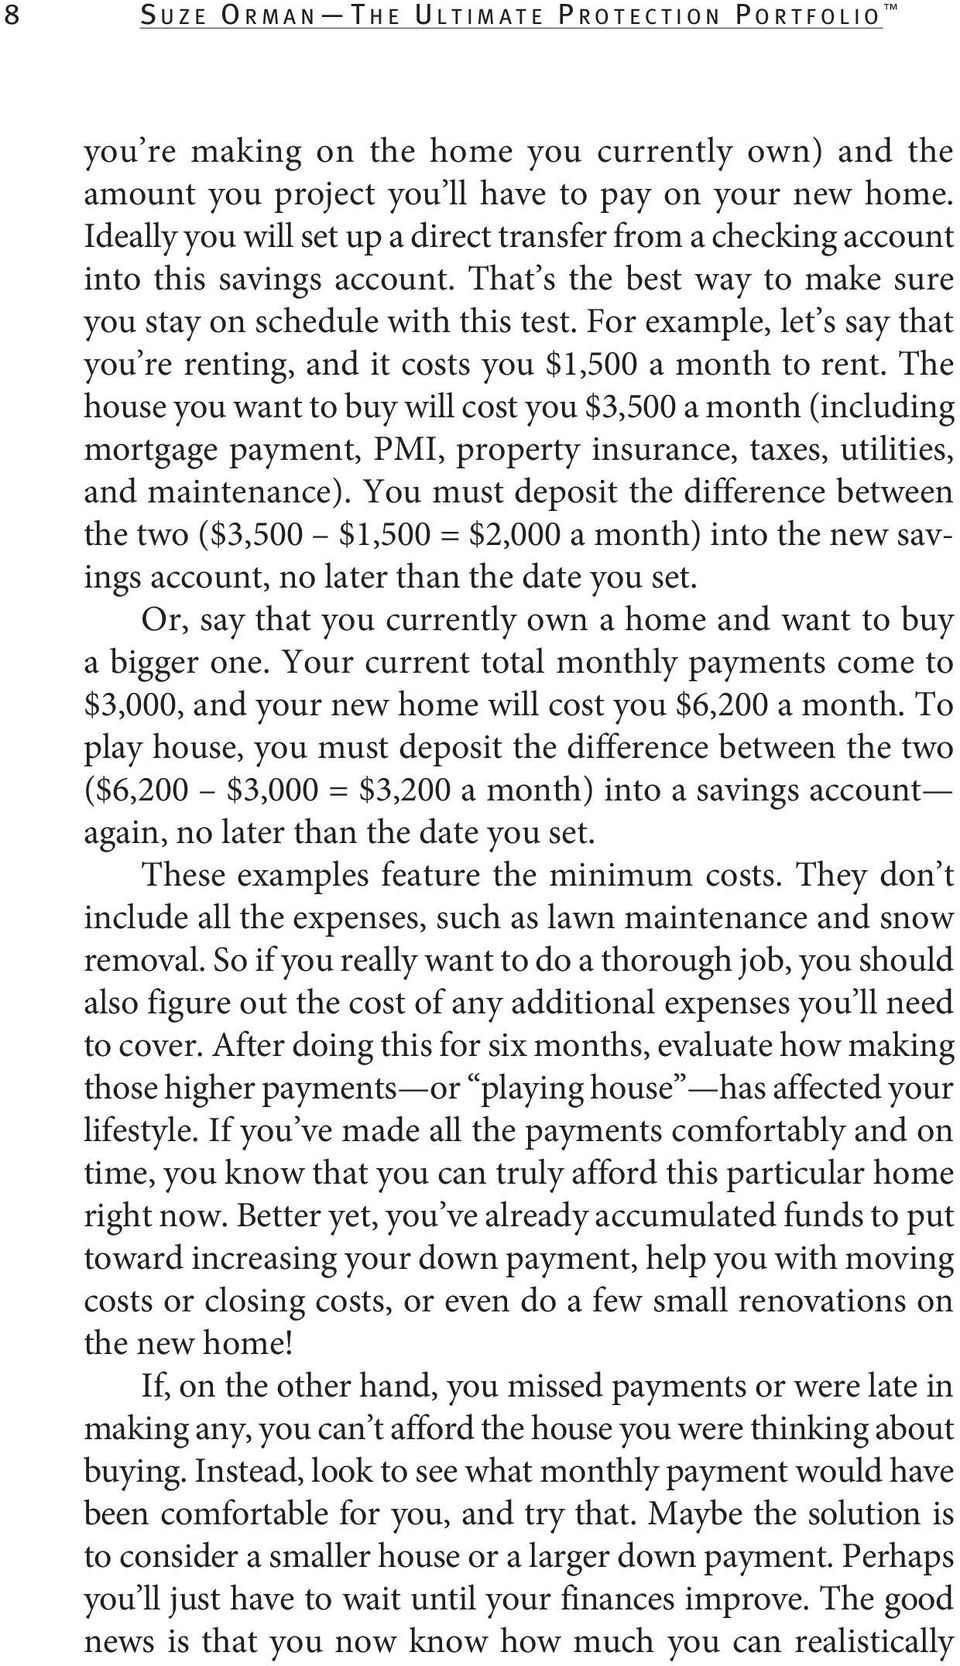 For example, let s say that you re renting, and it costs you $1,500 a month to rent.